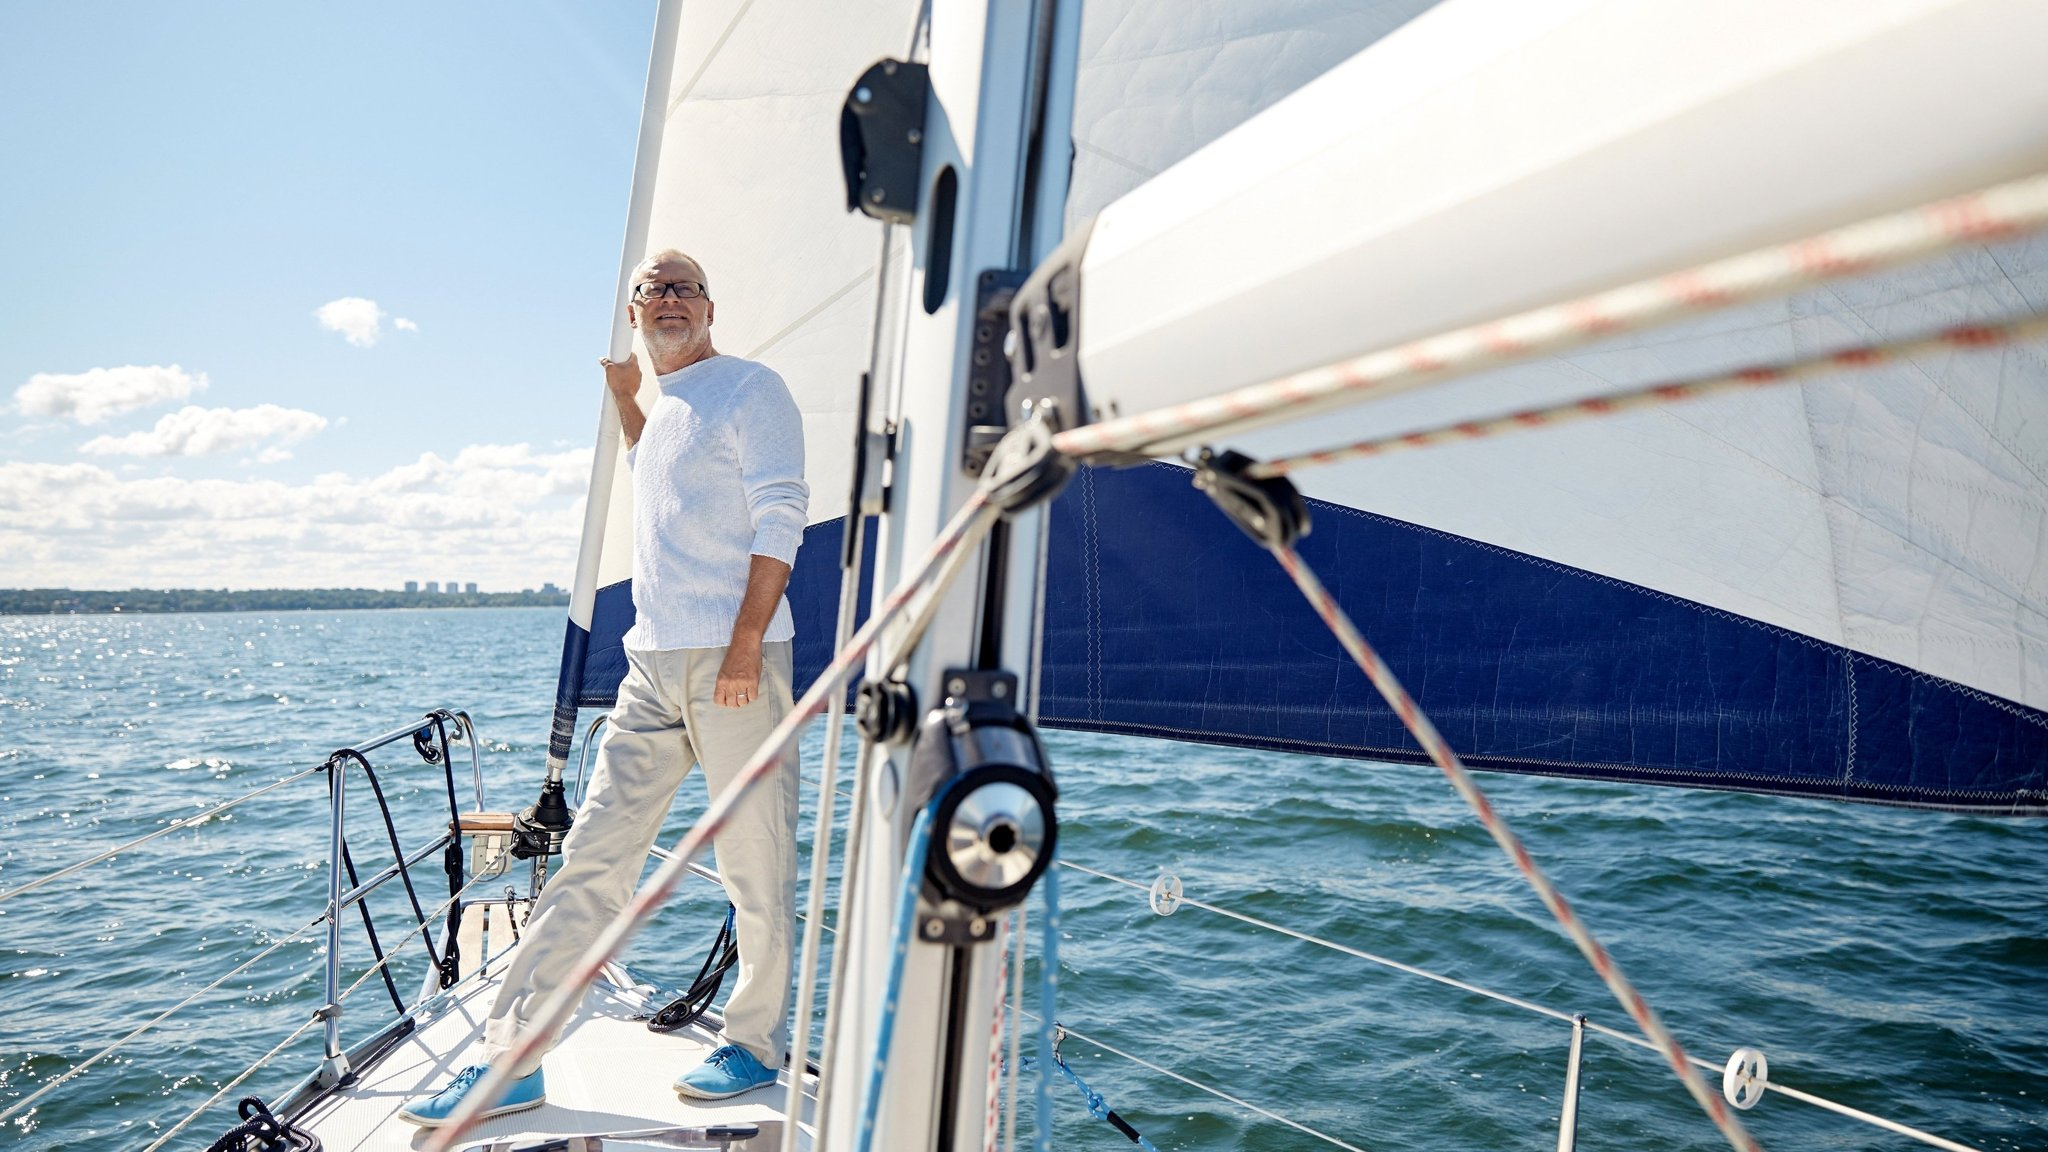 One in five UK baby boomers are millionaires | Financial Times